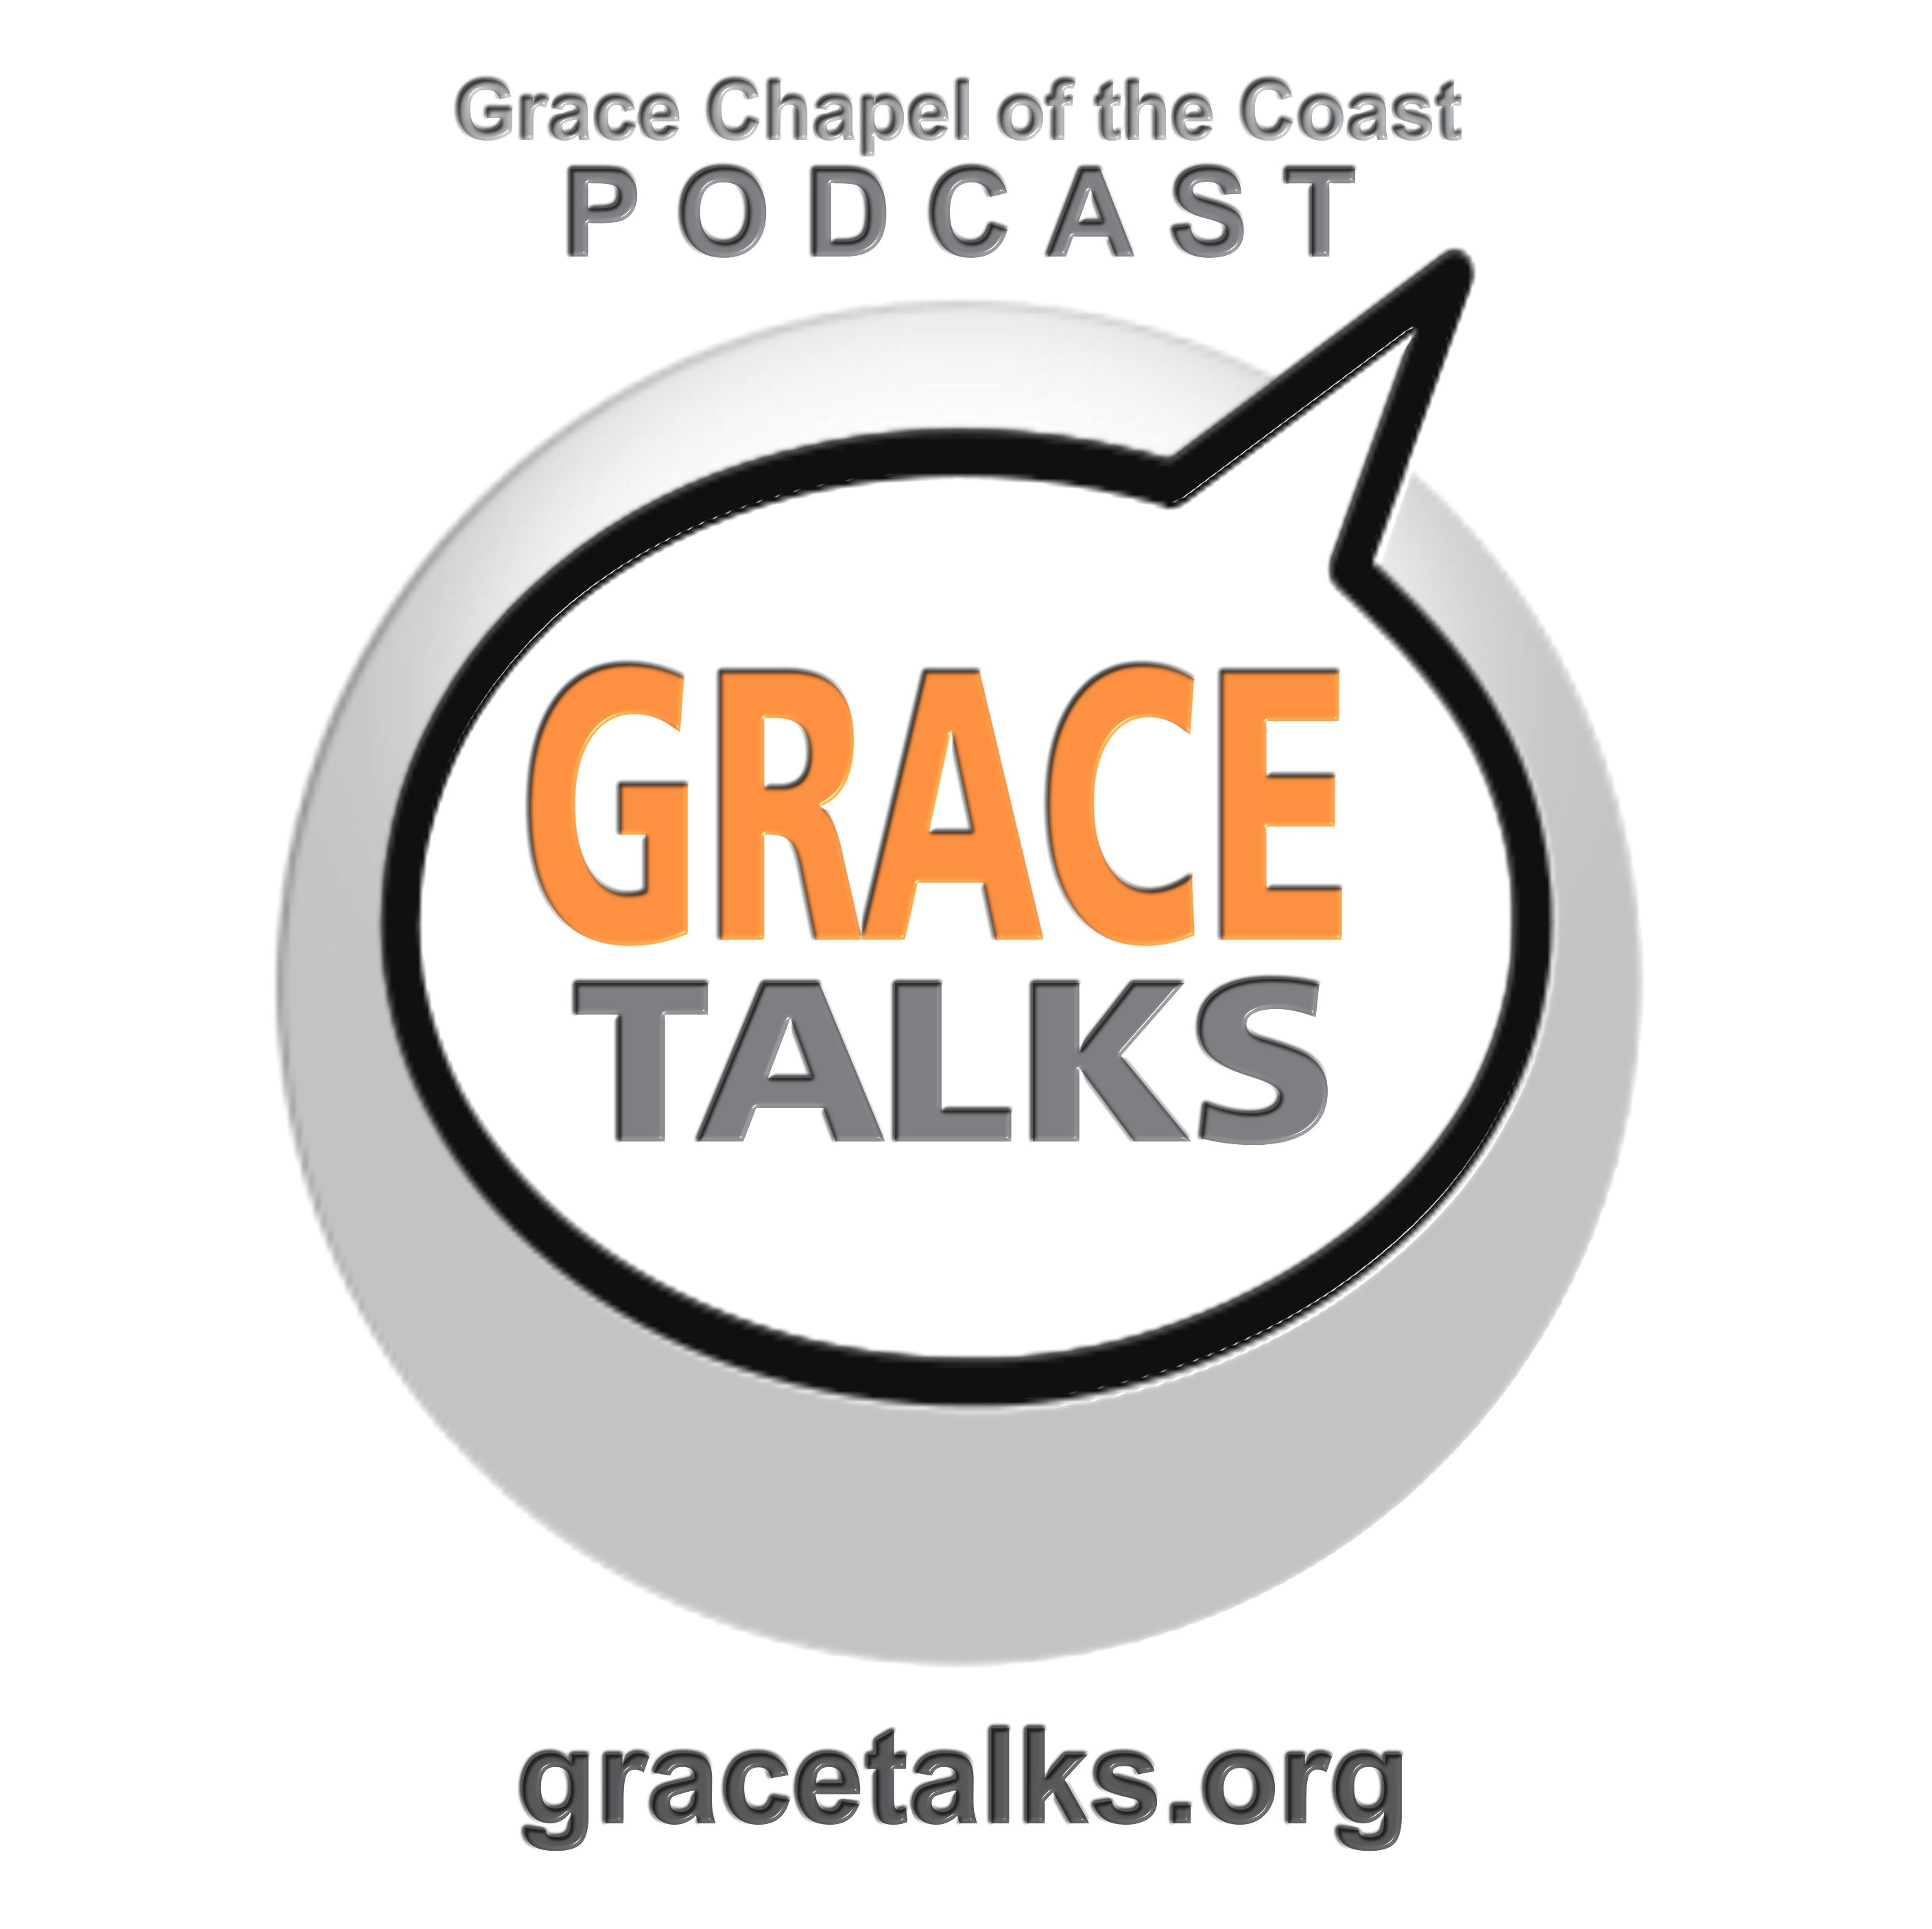 GRACE TALKS.